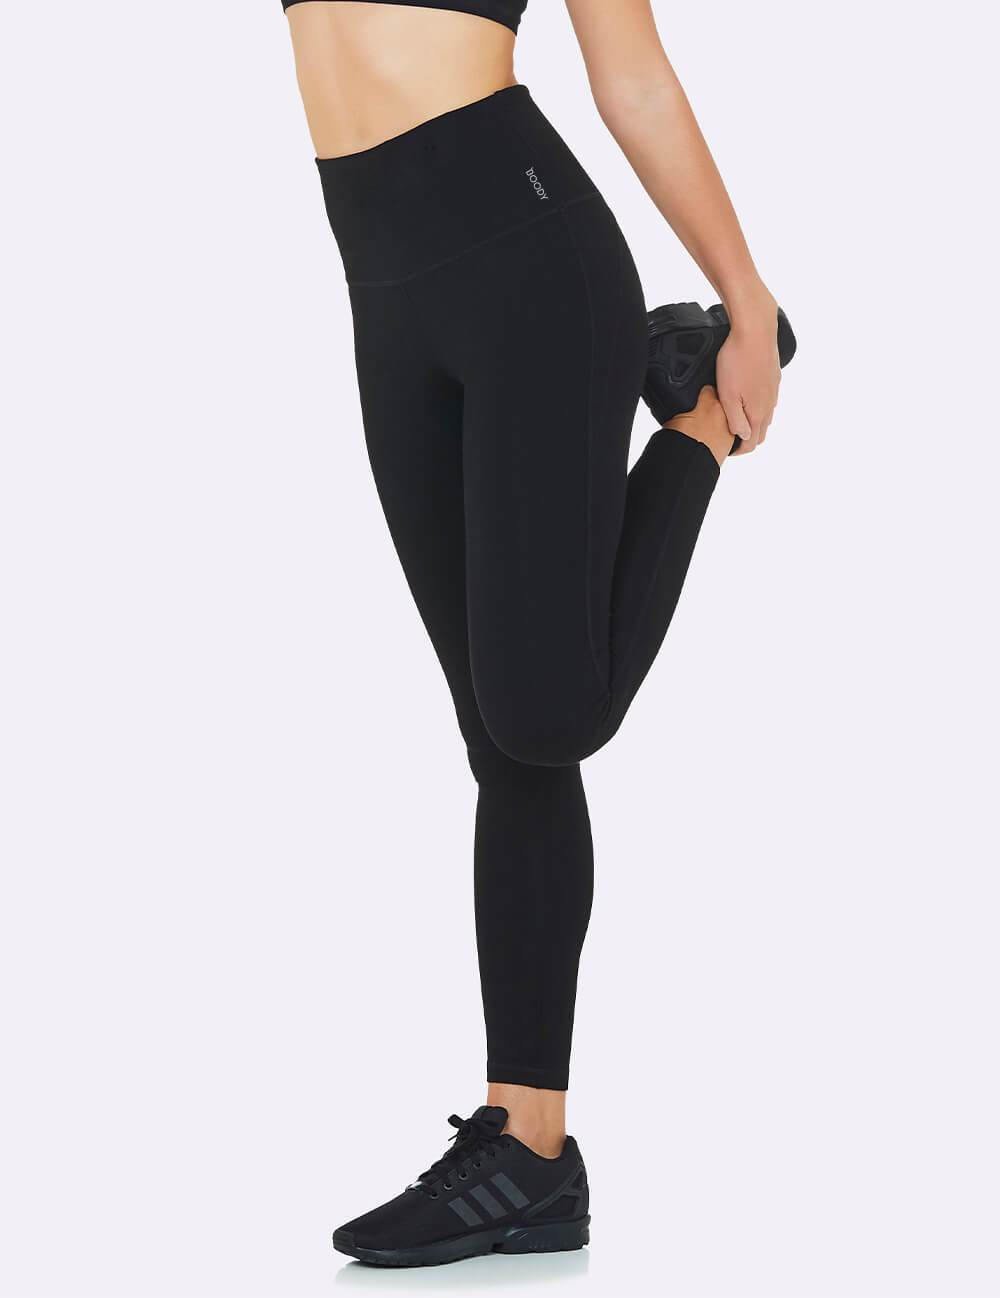 Active Blended High-Waisted Full Leggings by Boody, available on boodywear.com for $71.95 Elsa Hosk Pants Exact Product